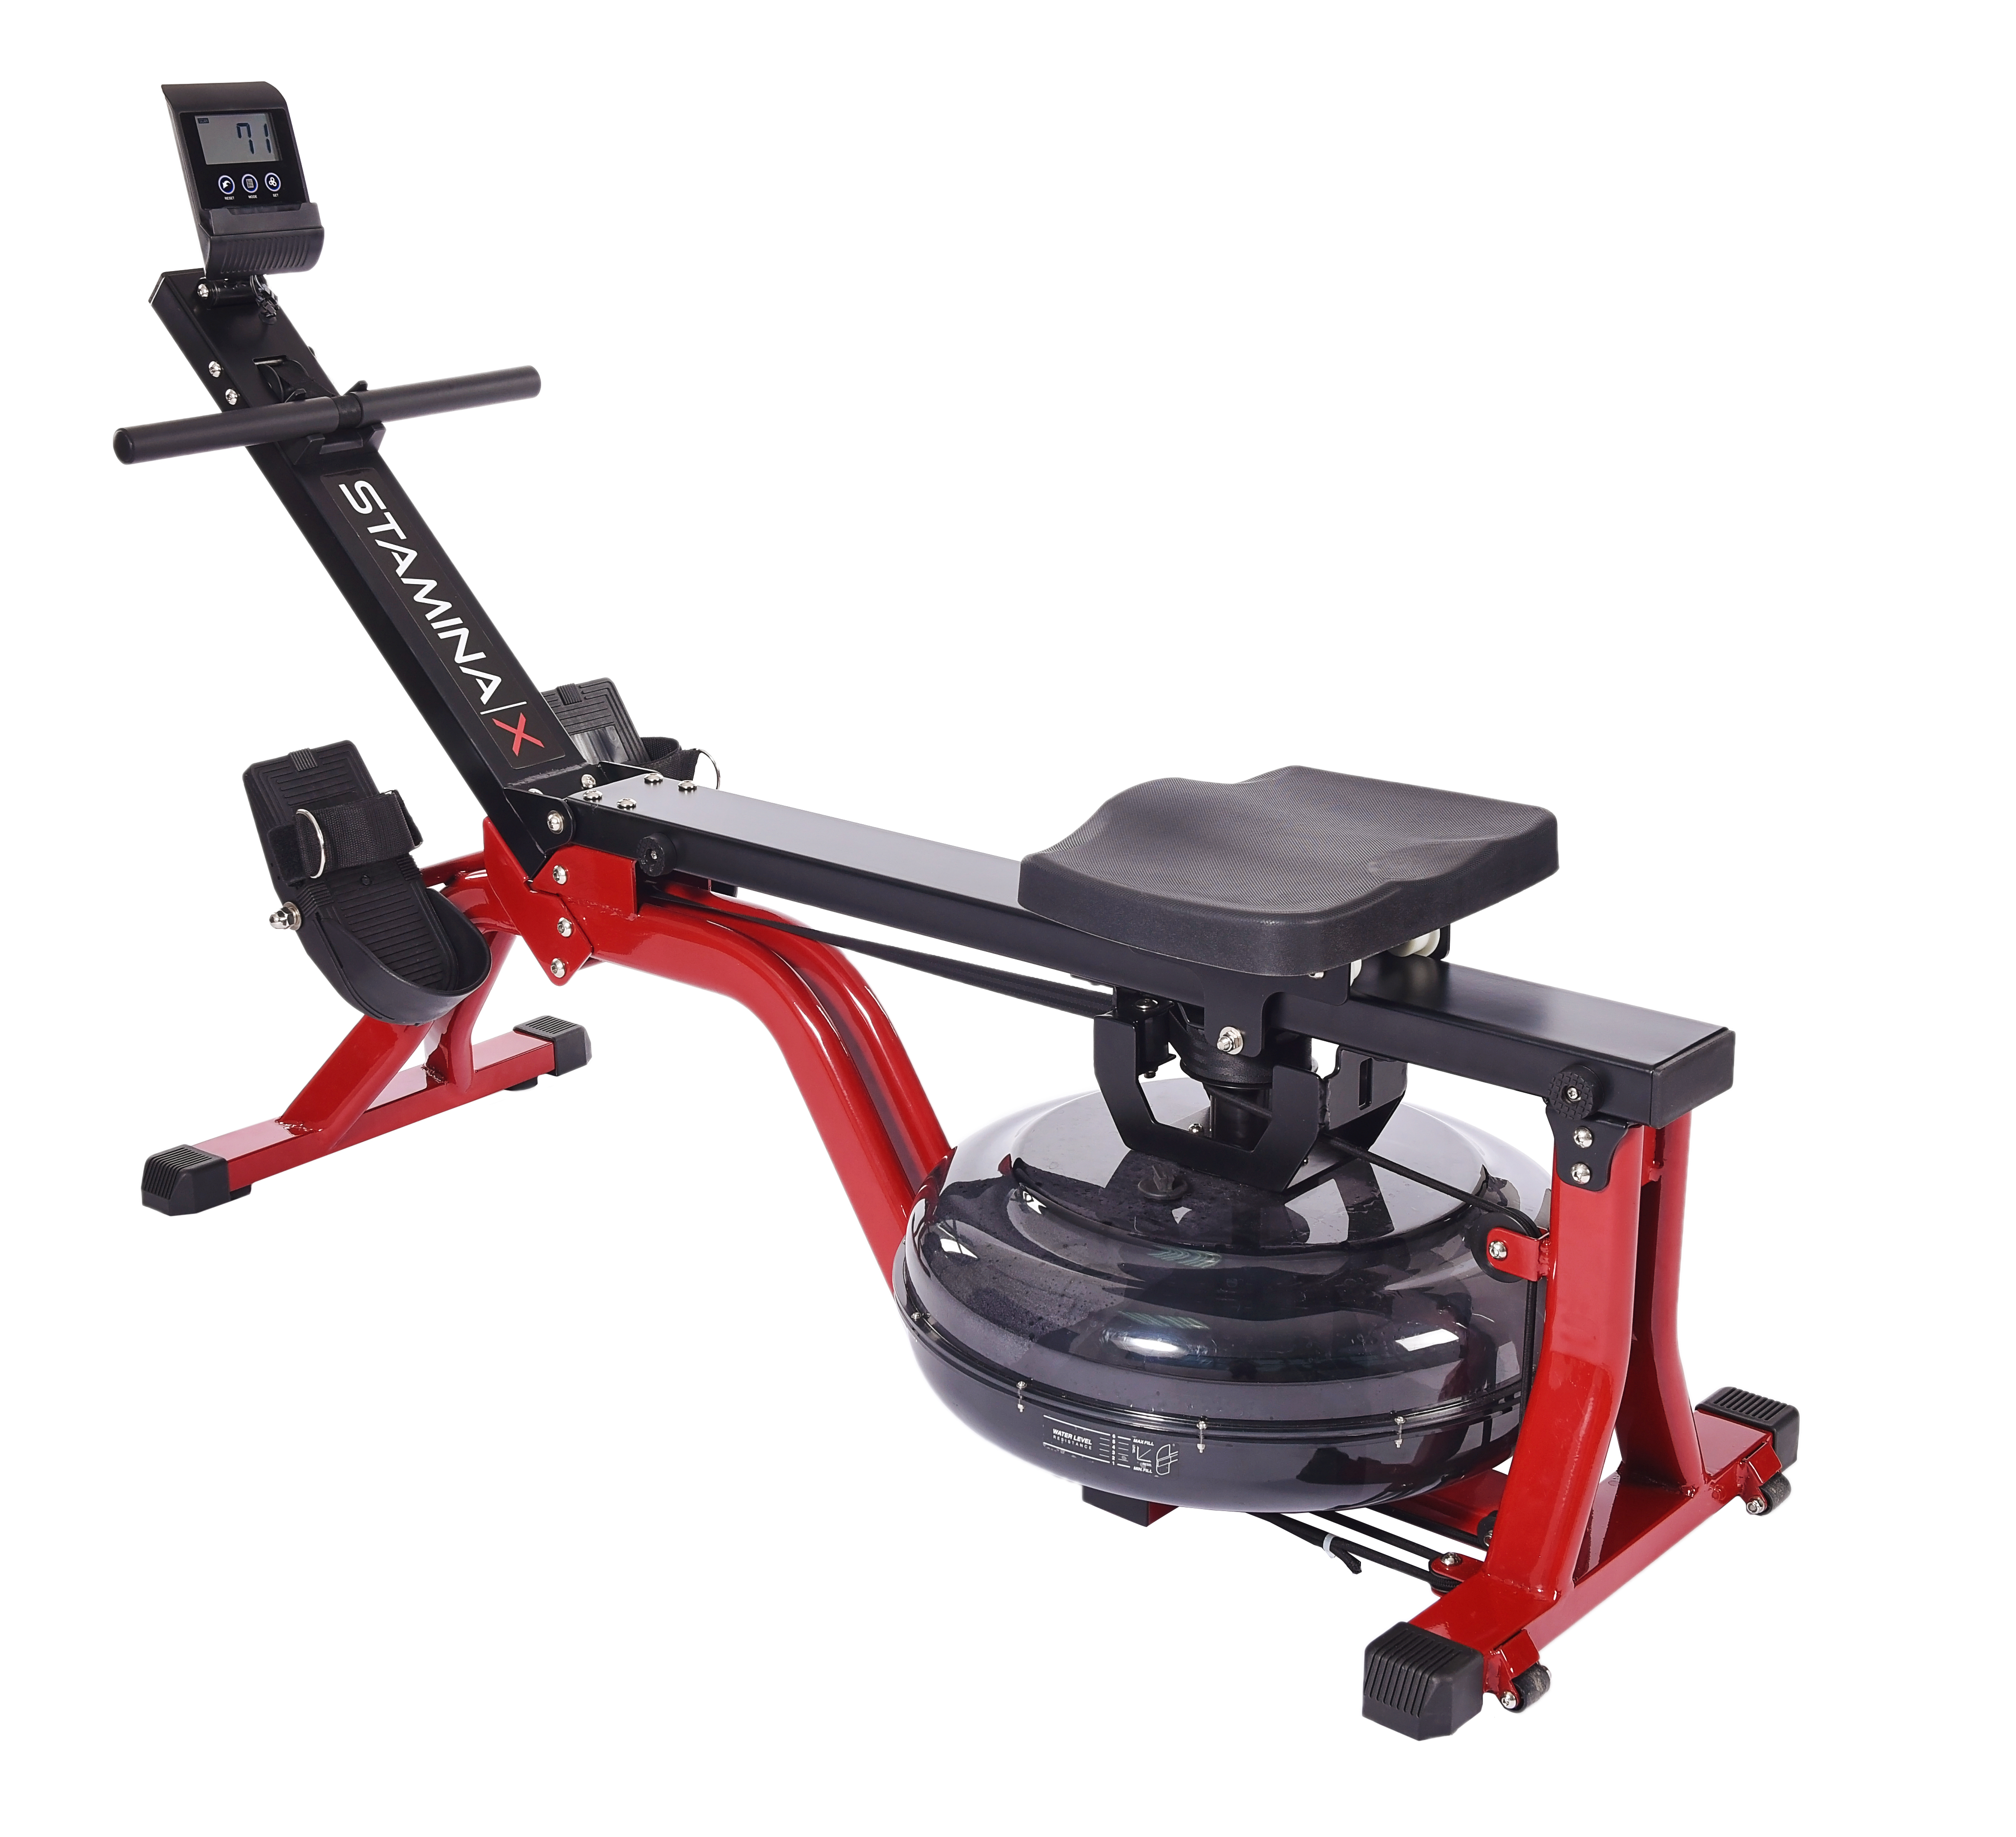 Stamina X Water Rower with Wireless Heart Rate Transmitter